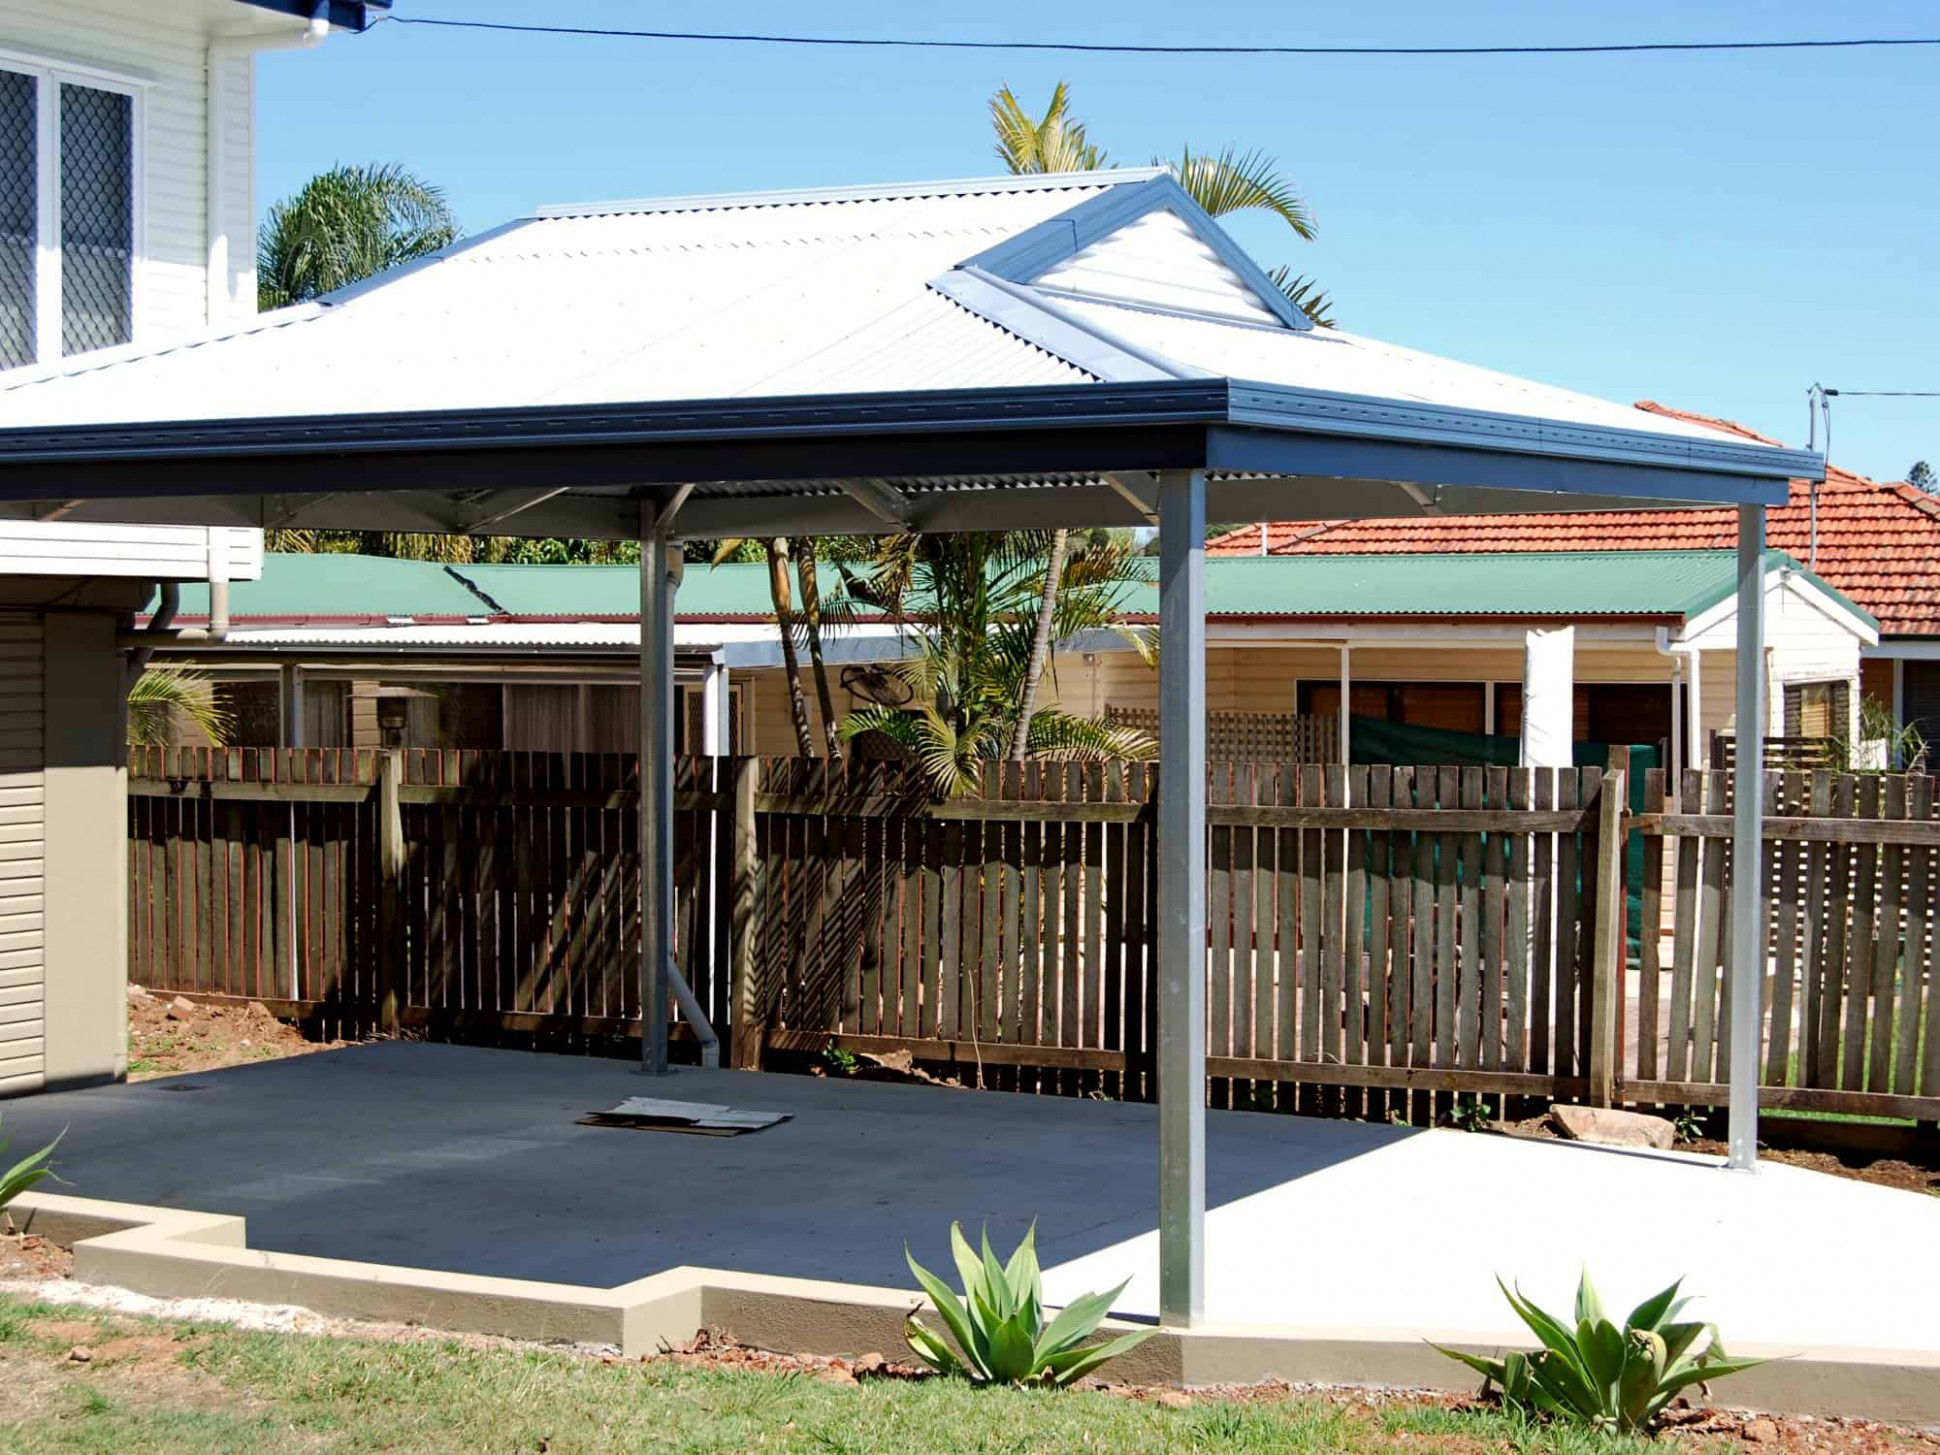 Carports | Any Size, Any Style | Carport Kits Or Installed Hip Roof Metal Carports